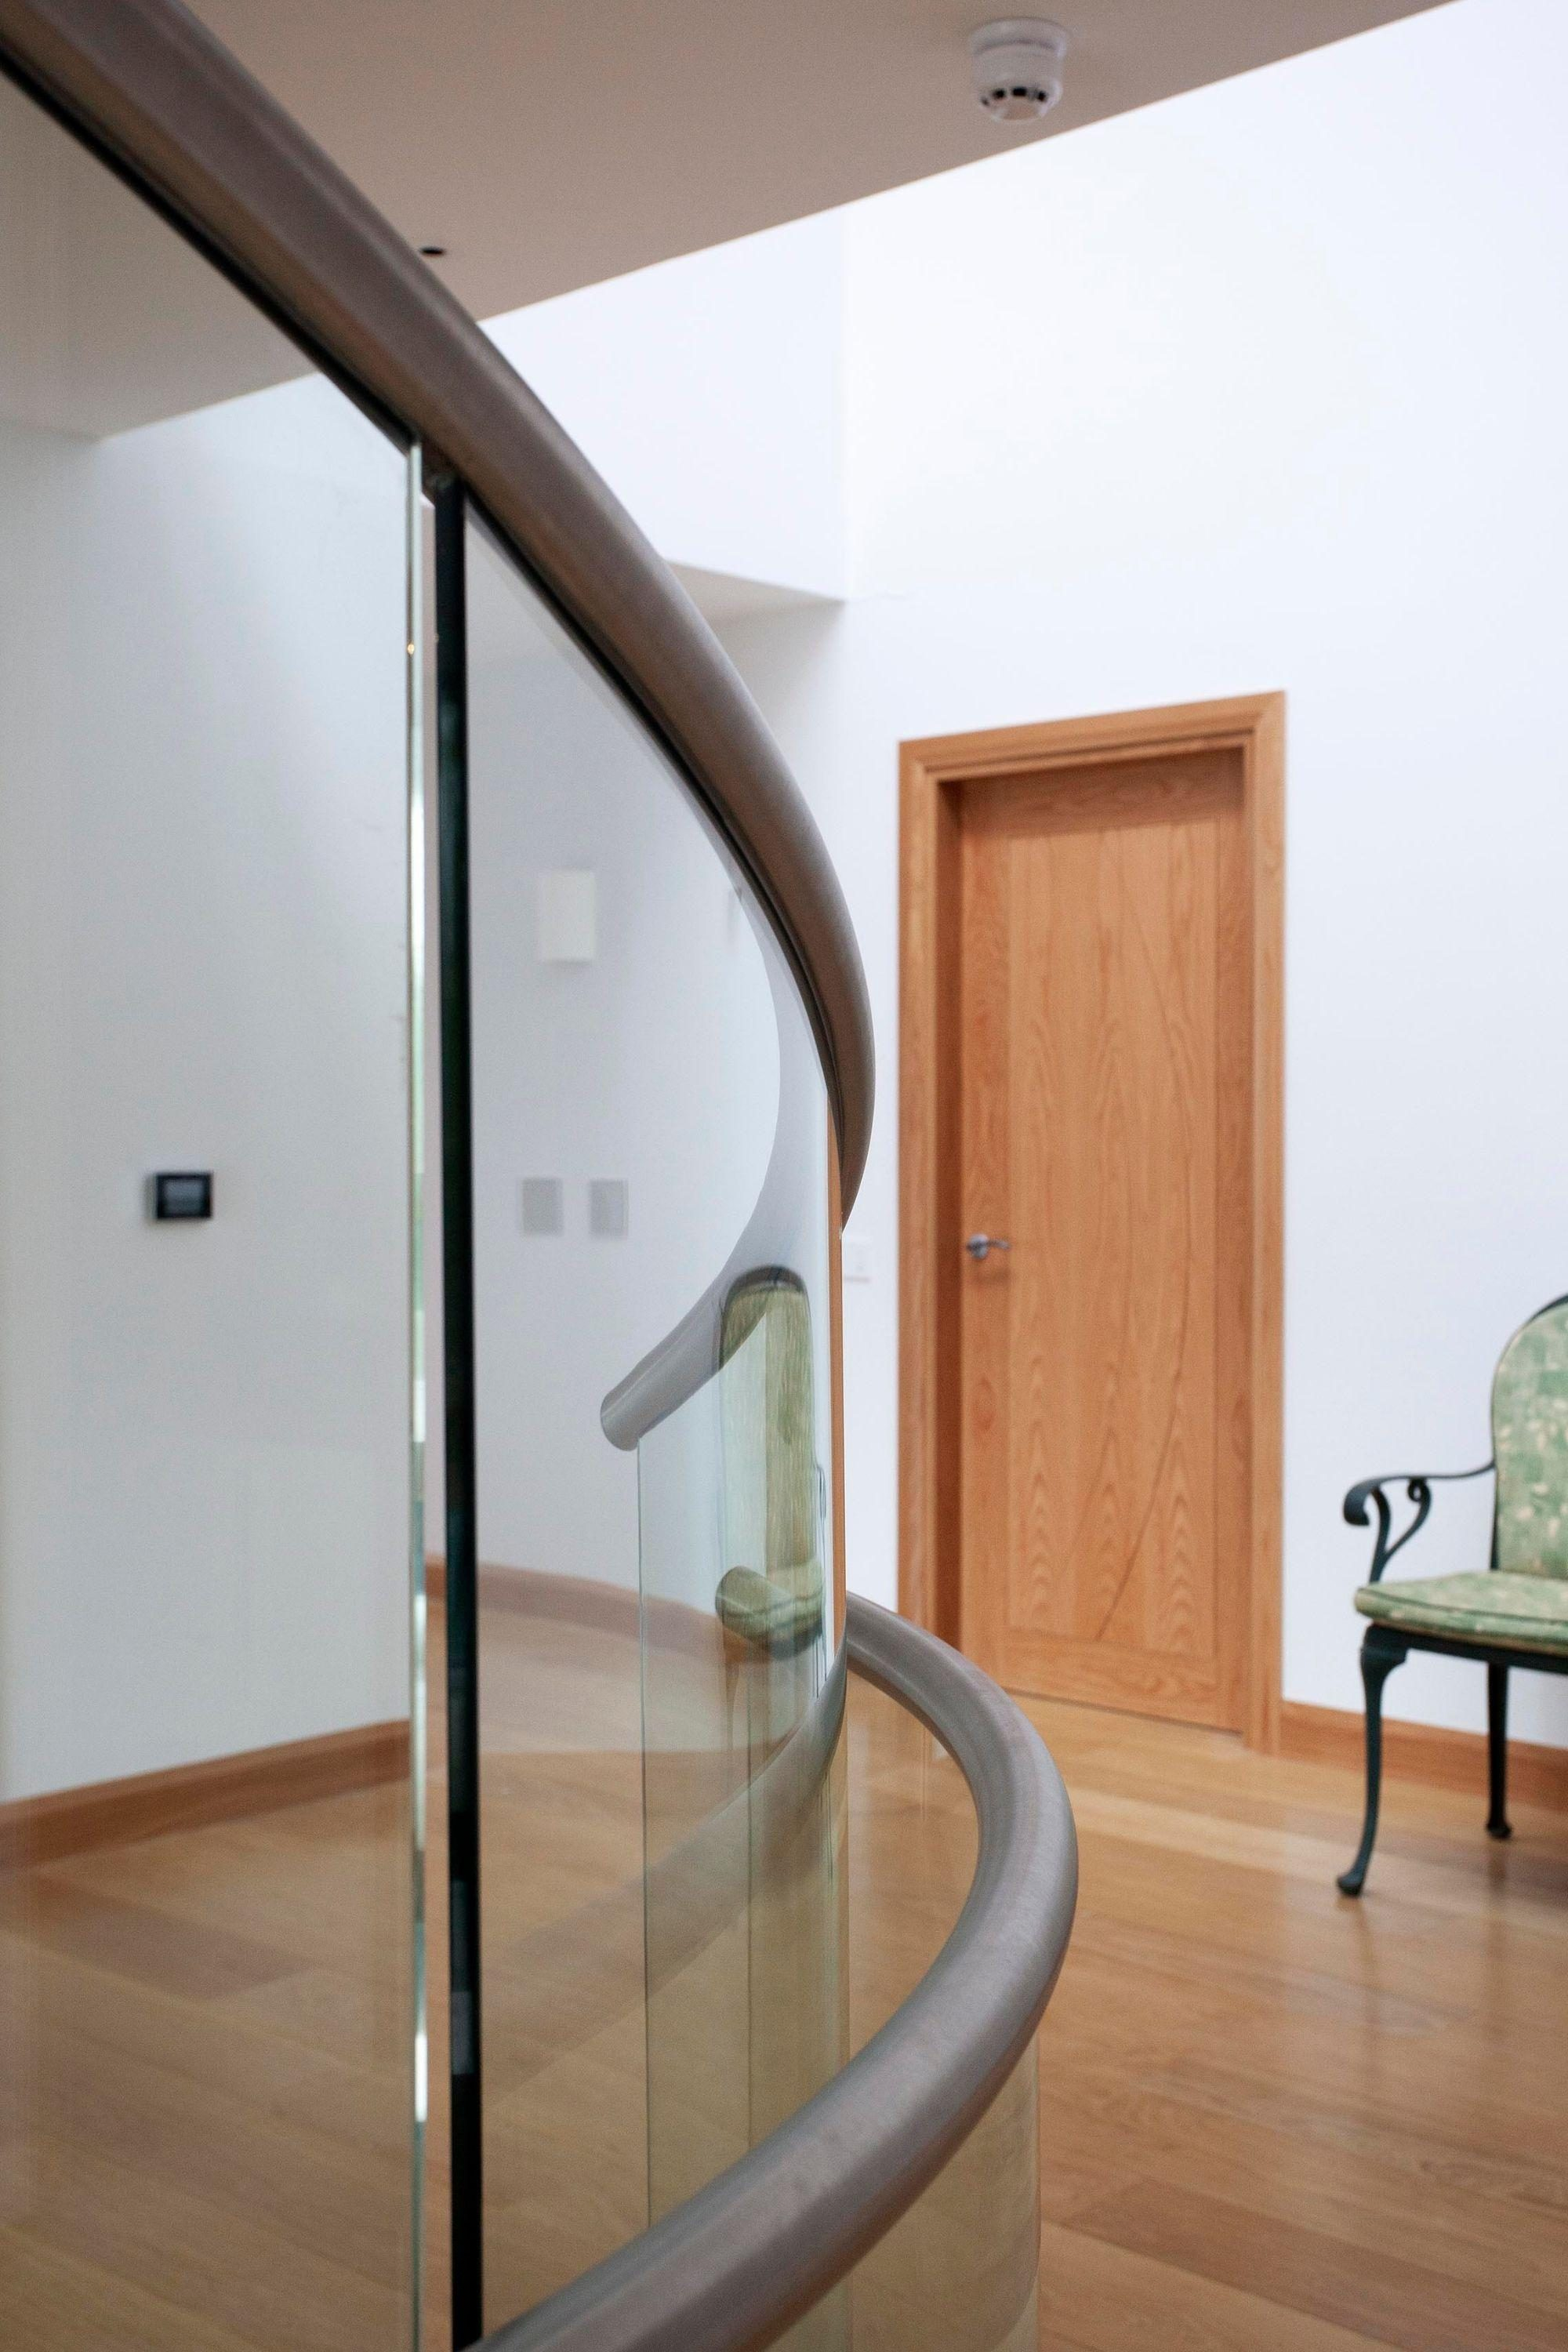 Curved glass balustrade and handrail